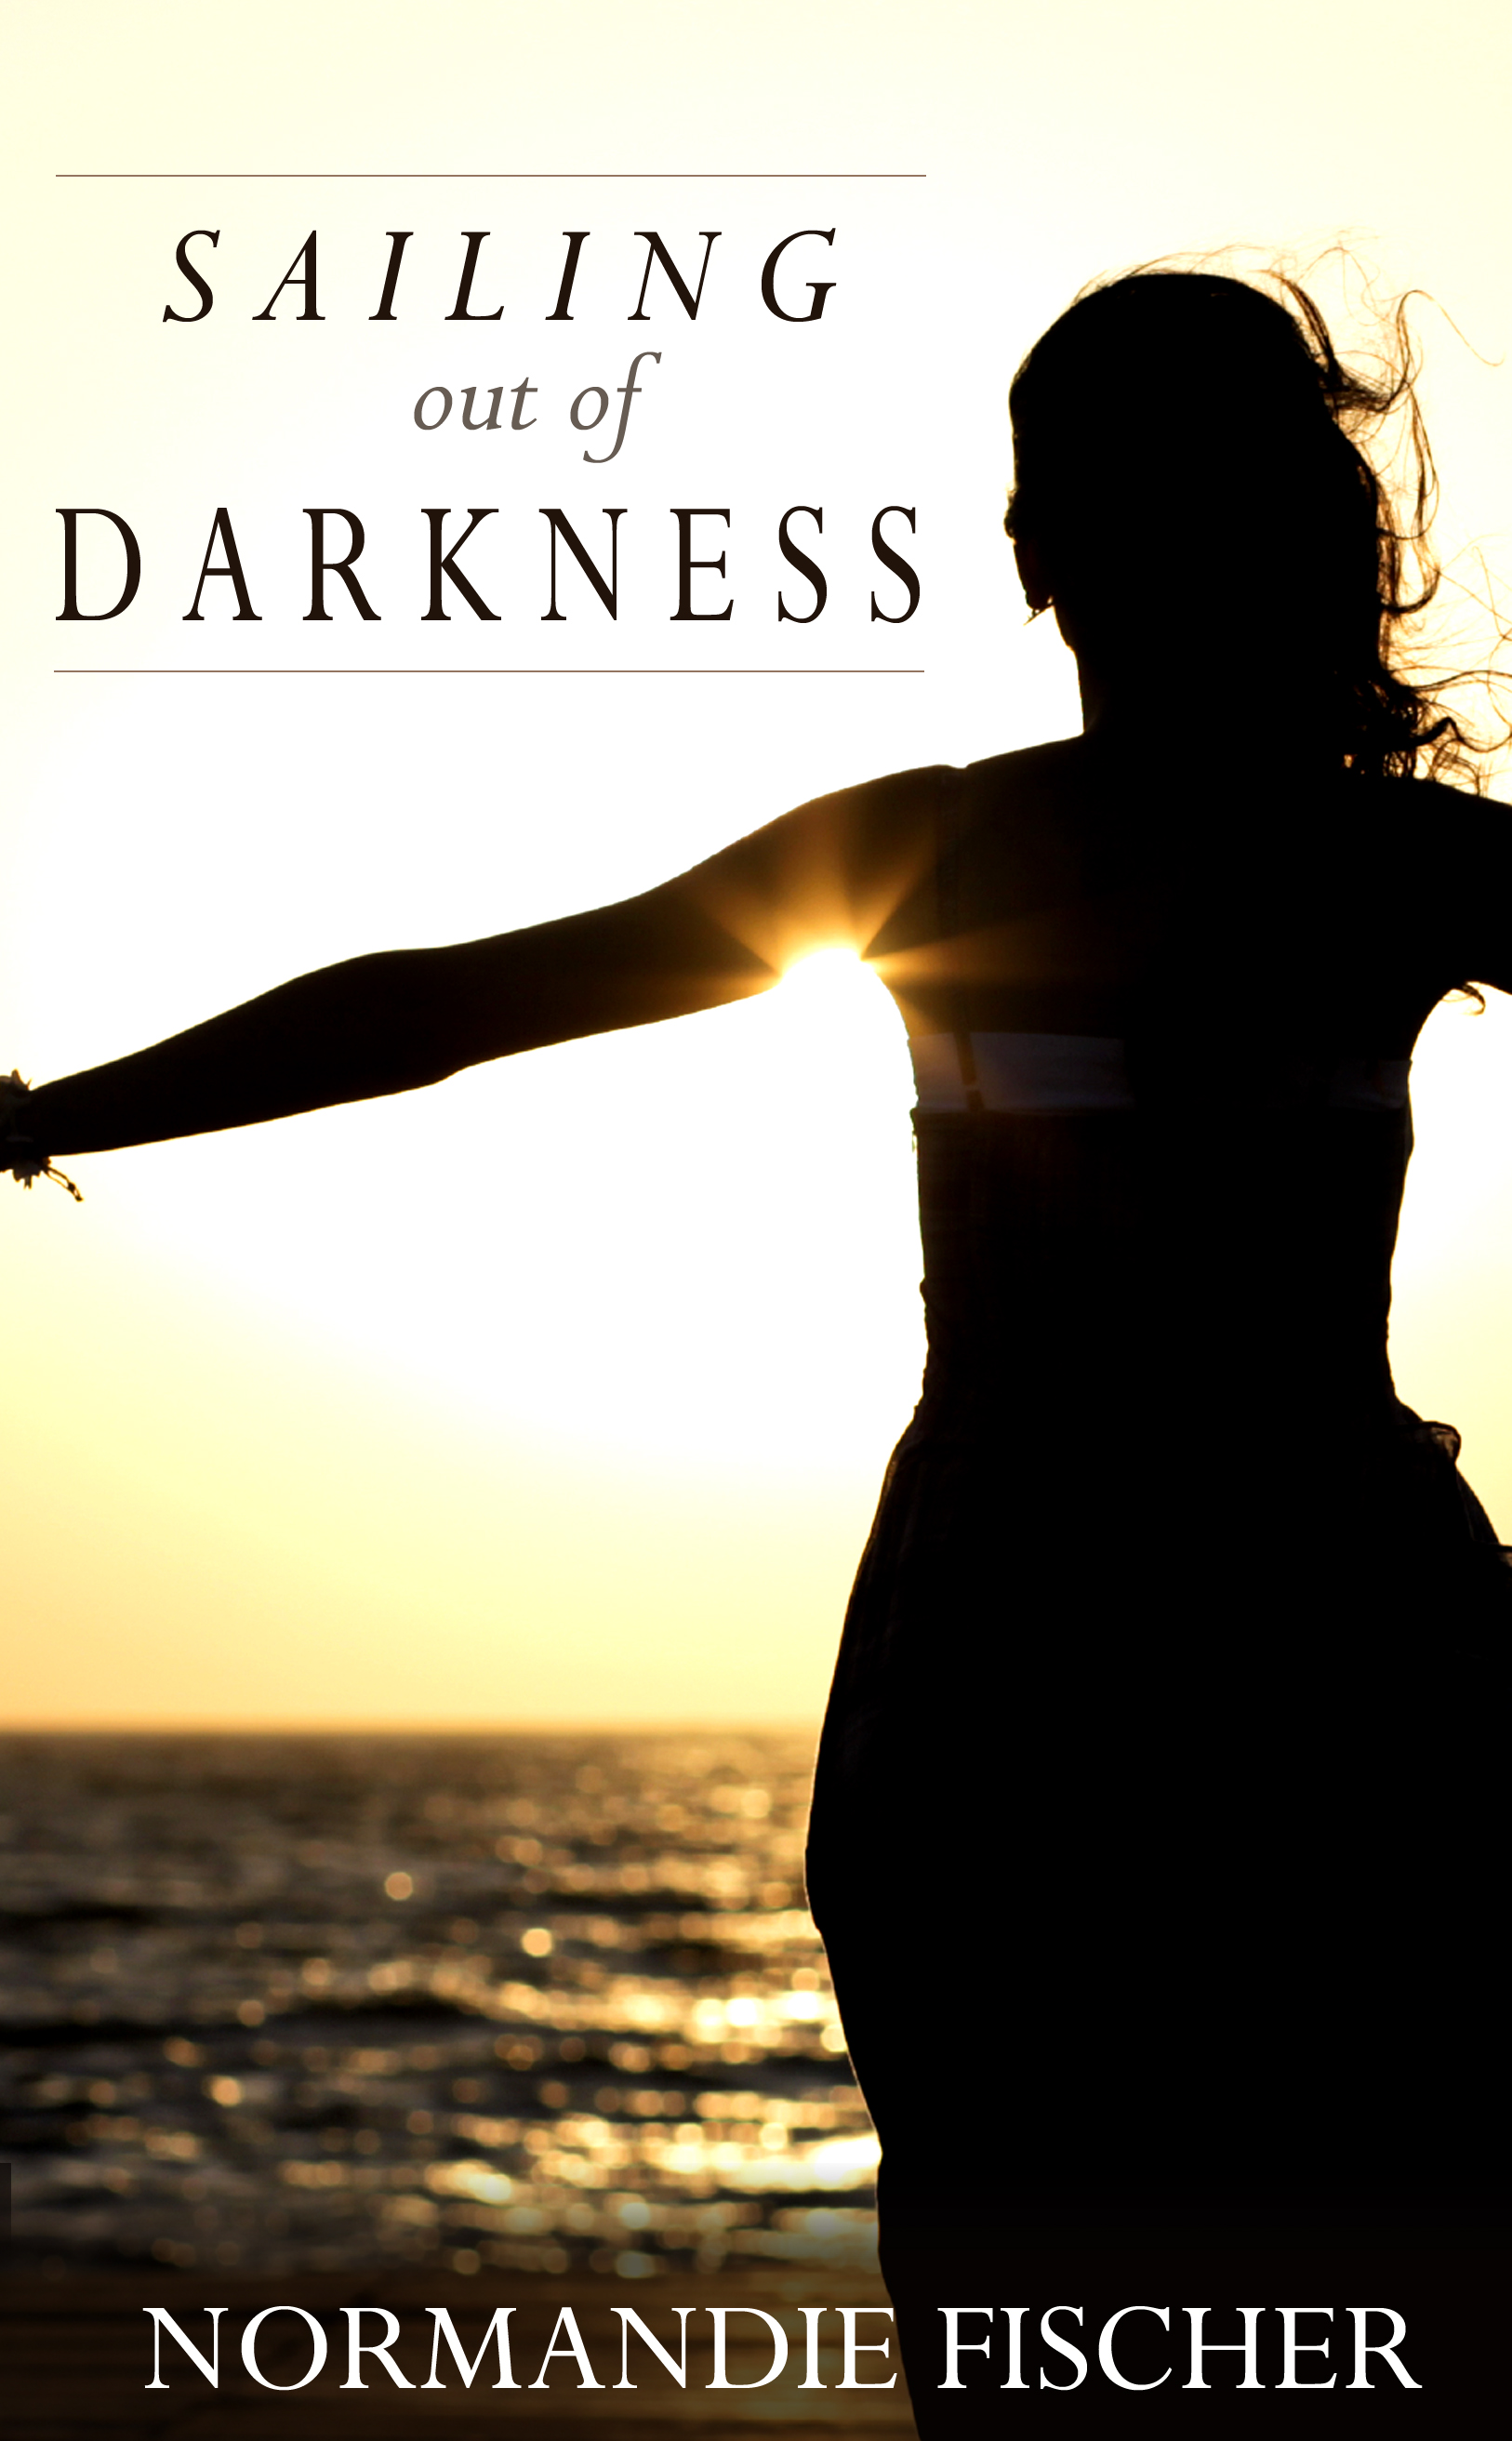 A New Cover for Sailing out of Darkness! Releases August 15, 2013